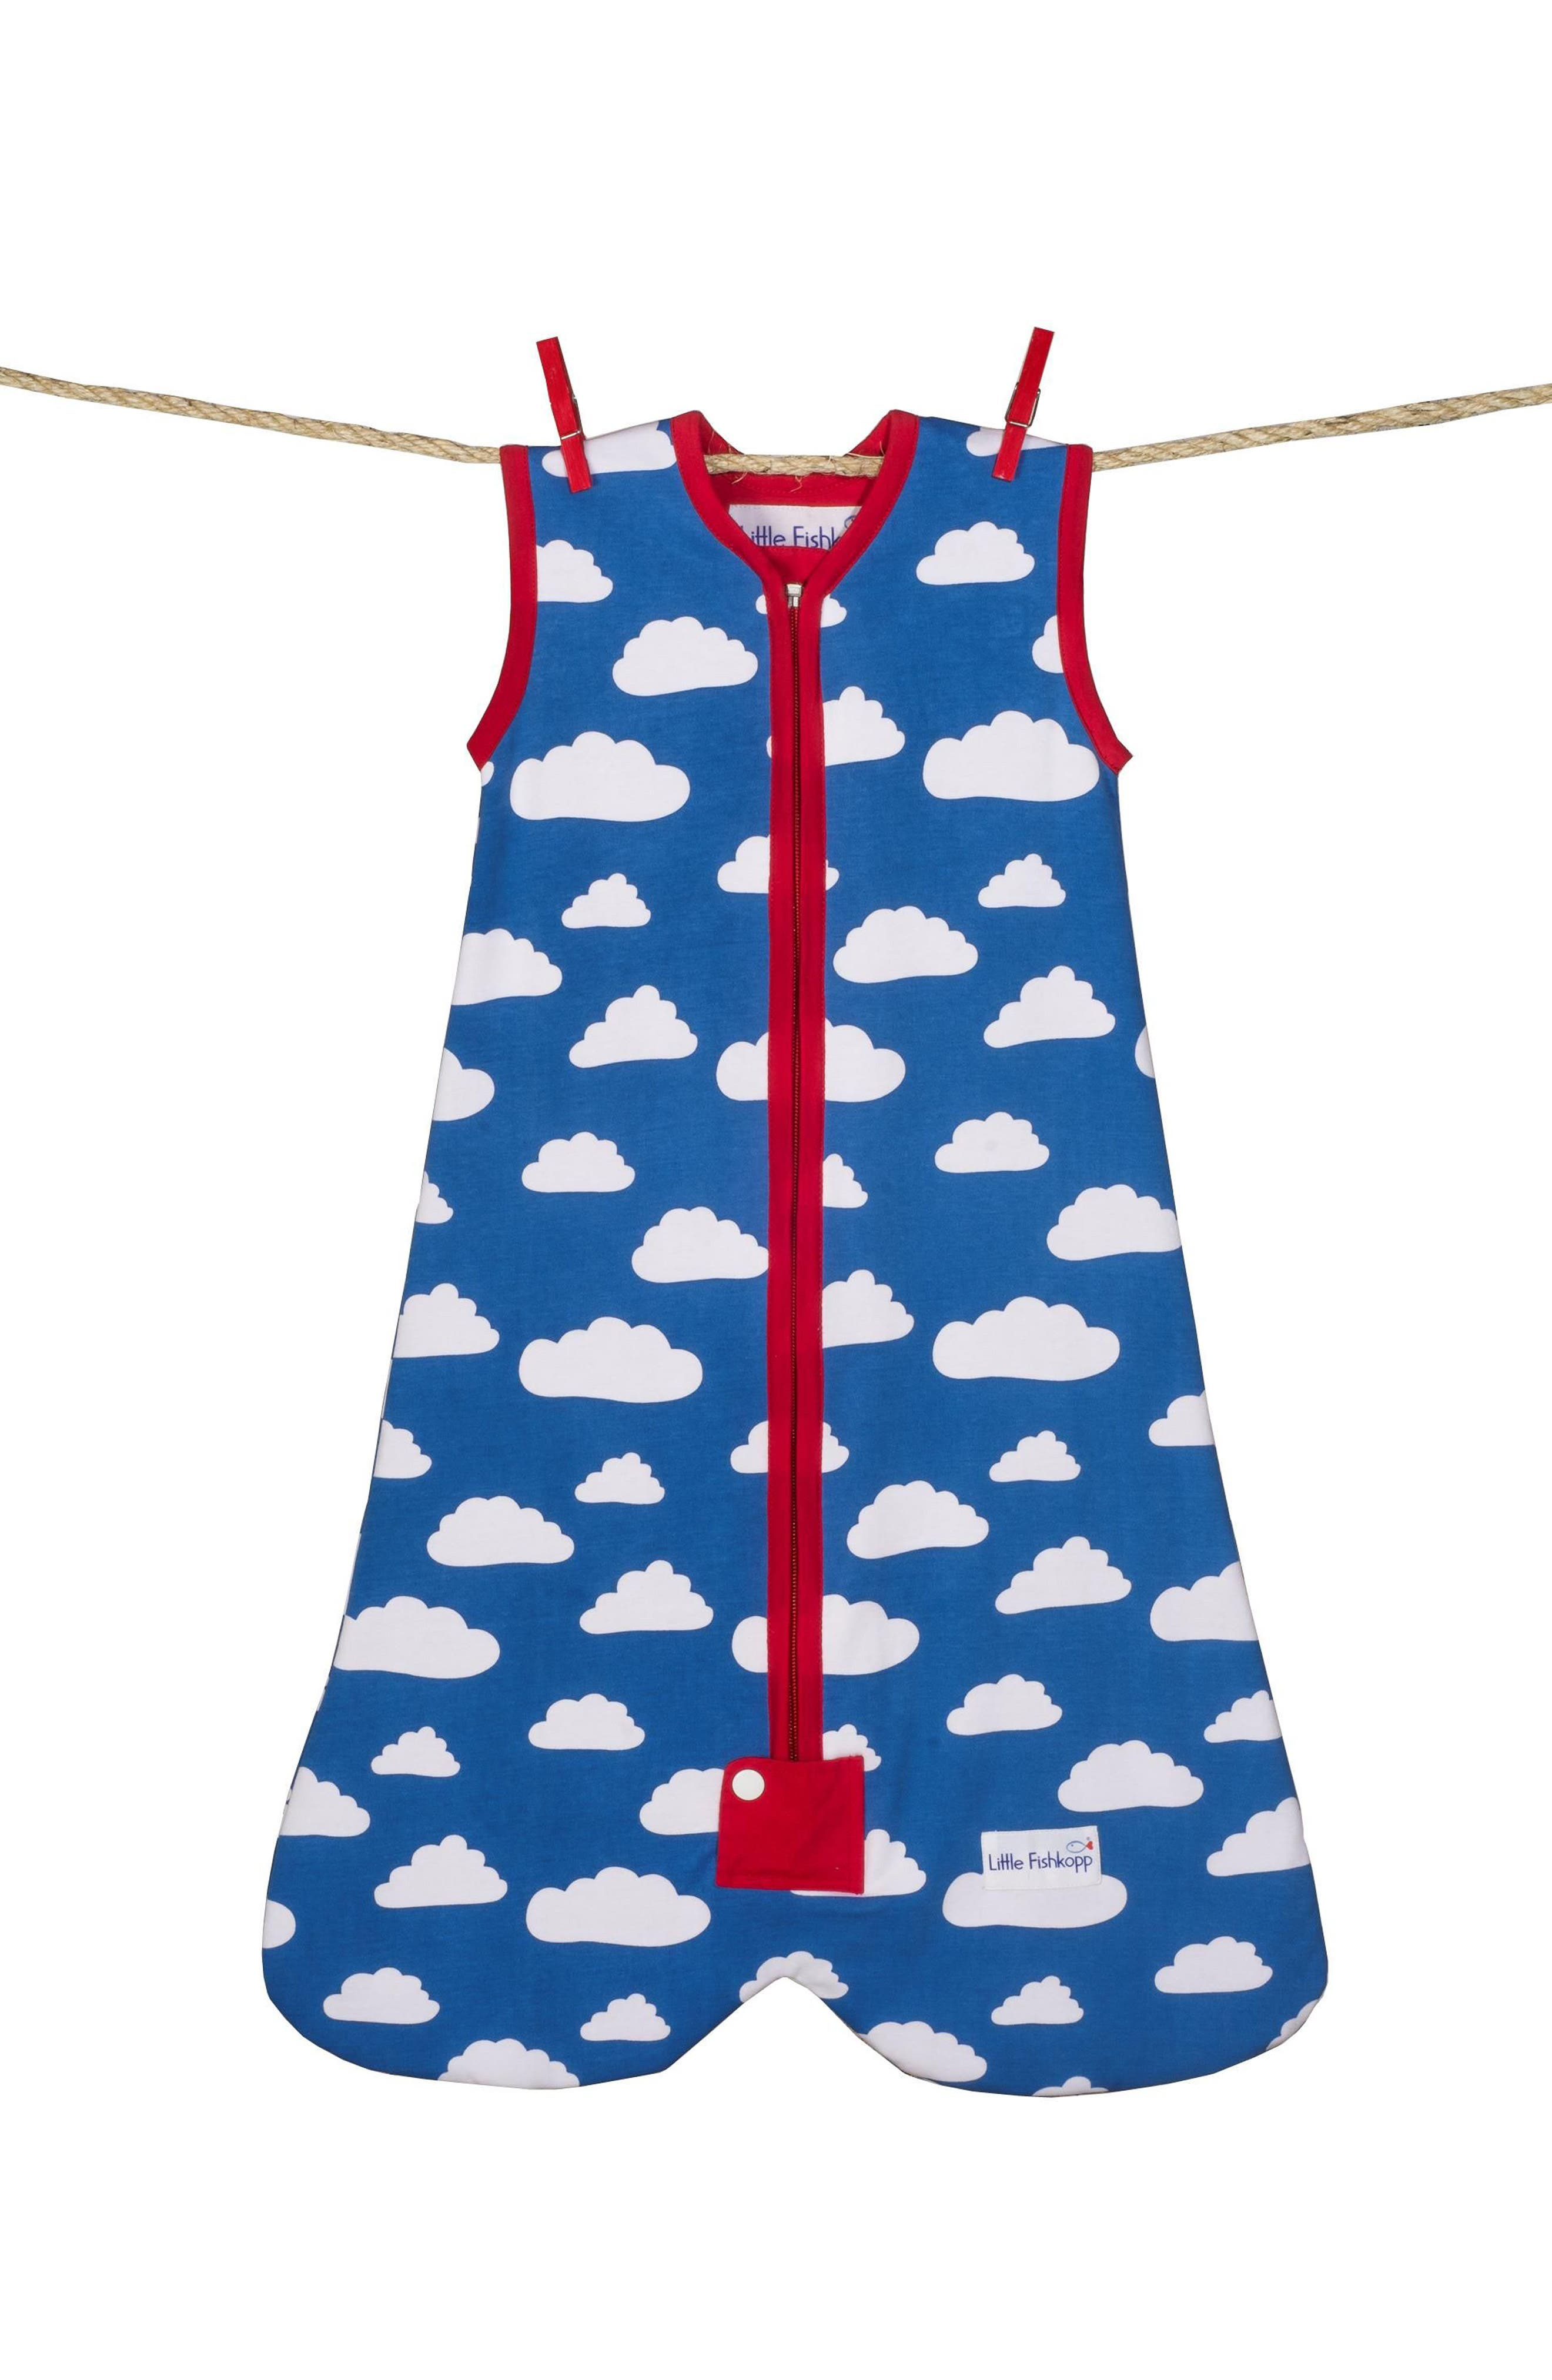 Main Image - Little Fishkopp Clouds Organic Cotton Wearable Blanket (Baby)